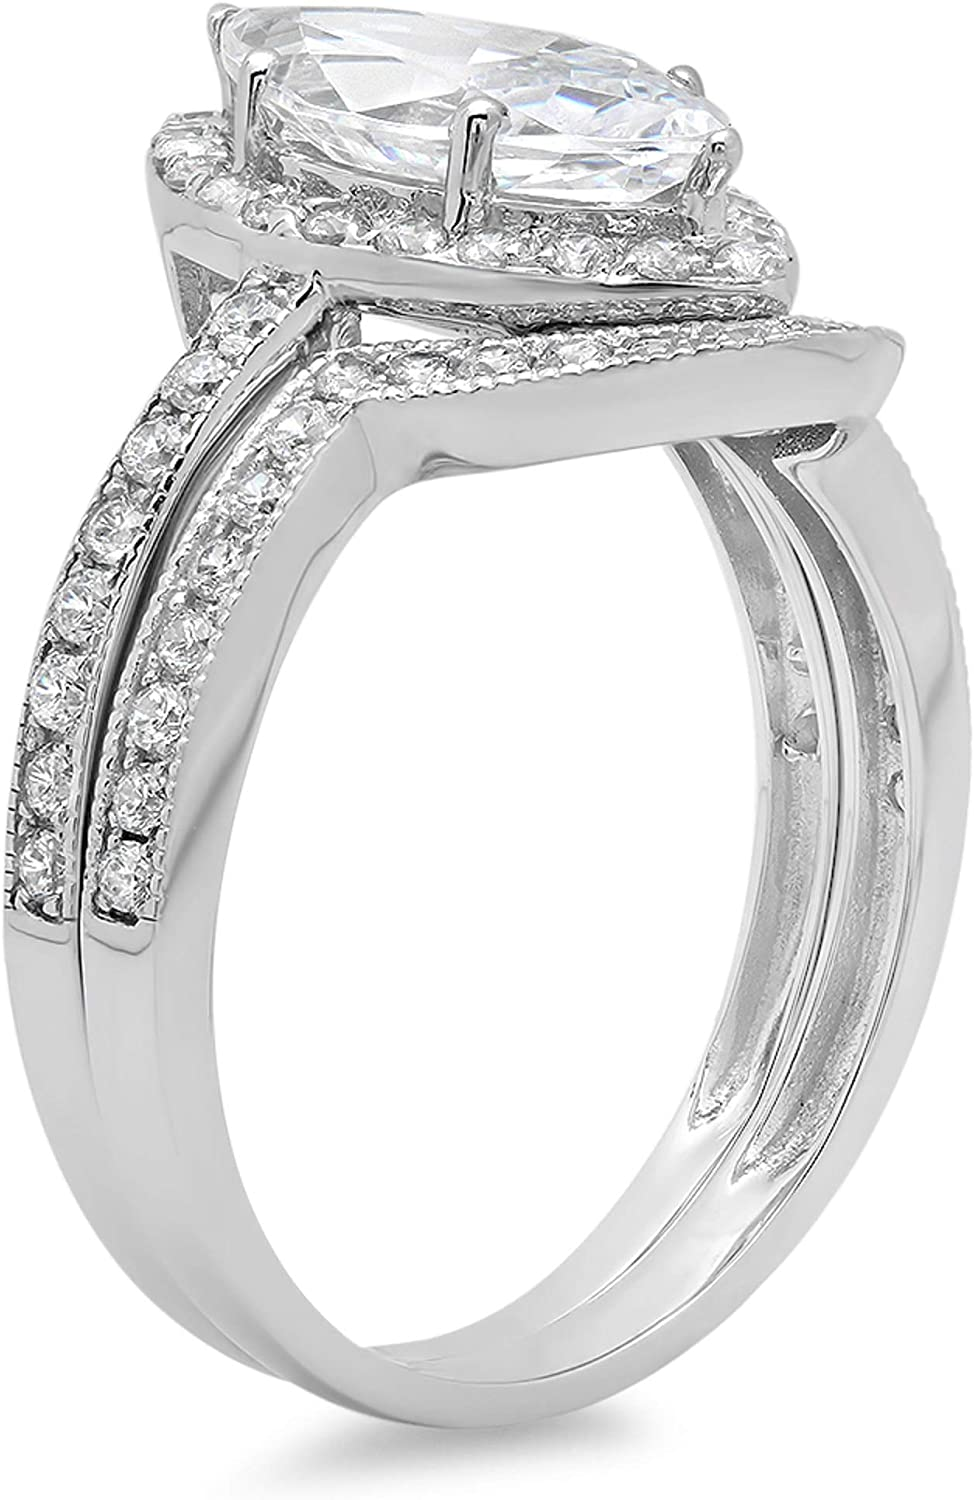 2.16ct Marquise Round Cut Pave Halo Solitaire with Accent Stunning Genuine Moissanite & Simulated Diamond Engagement Promise Statement Anniversary Bridal Wedding Ring Band set Solid 14k White Gold